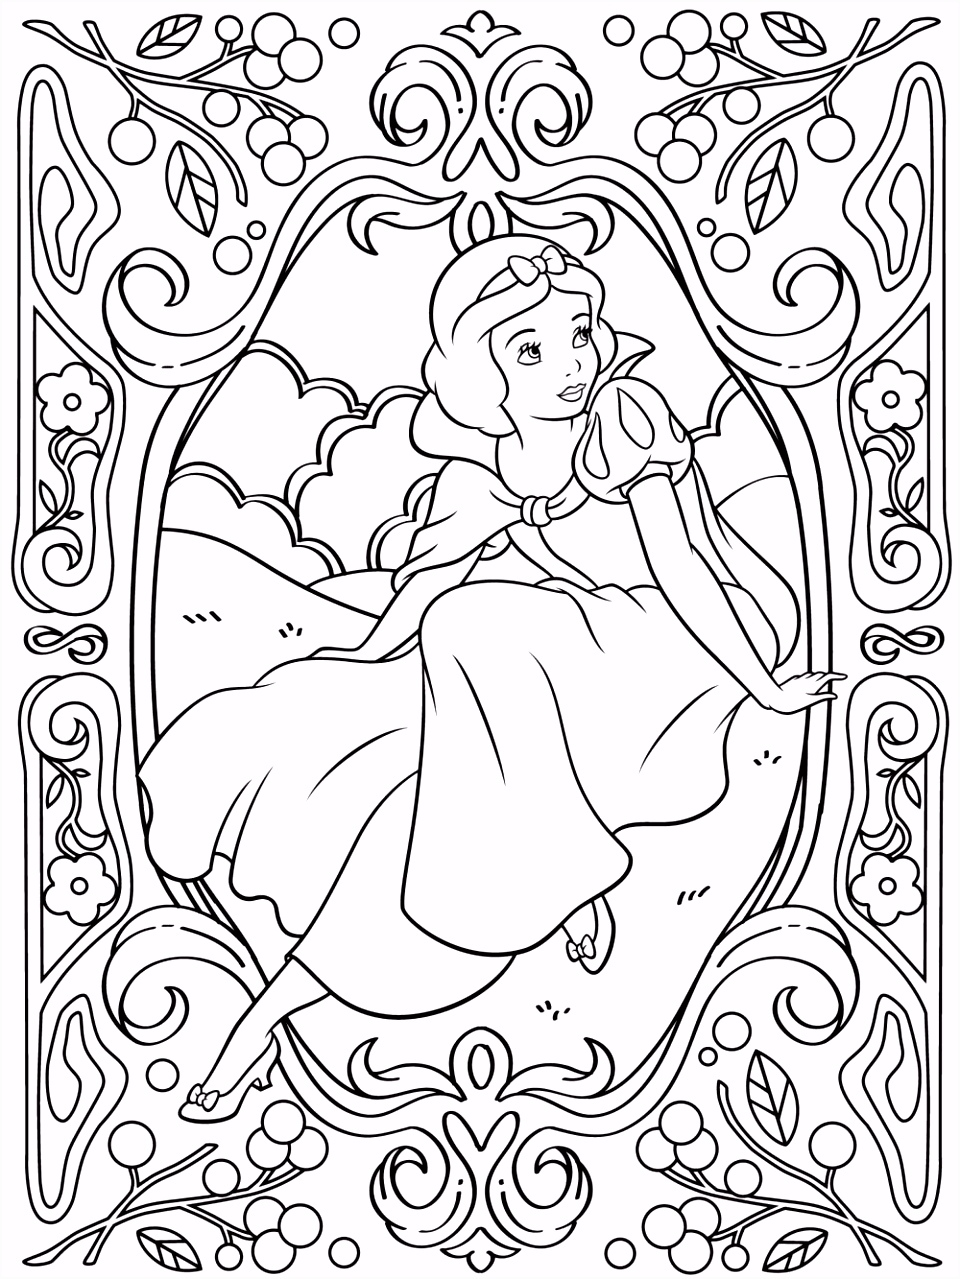 Kleurplaten Prinses Leonora Celebrate National Coloring Book Day with Diy Disney V3hc72tdw8 Xuytsuvez6